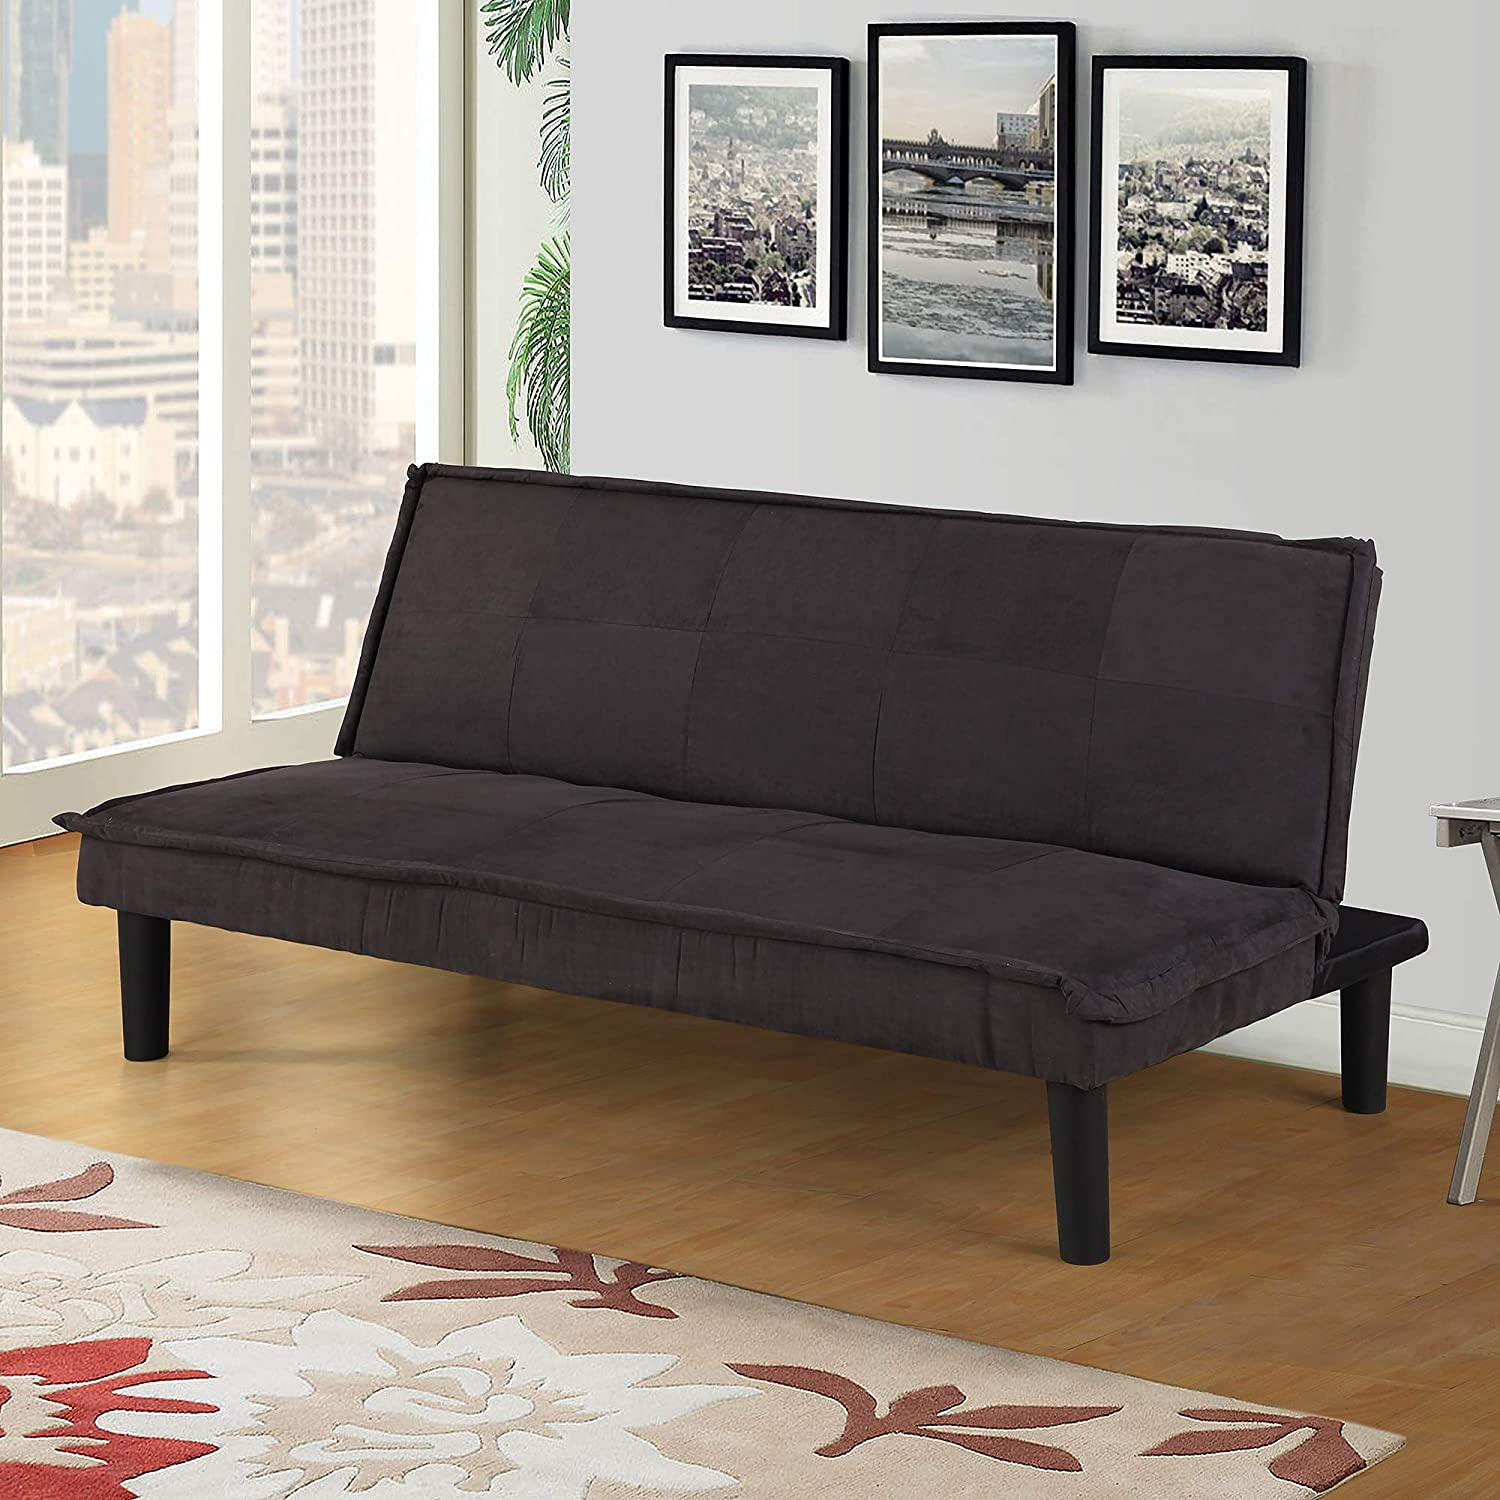 Superb Amazon Com Convertible Sofa Bed Futon Couch 3 Seater Sofa Pdpeps Interior Chair Design Pdpepsorg